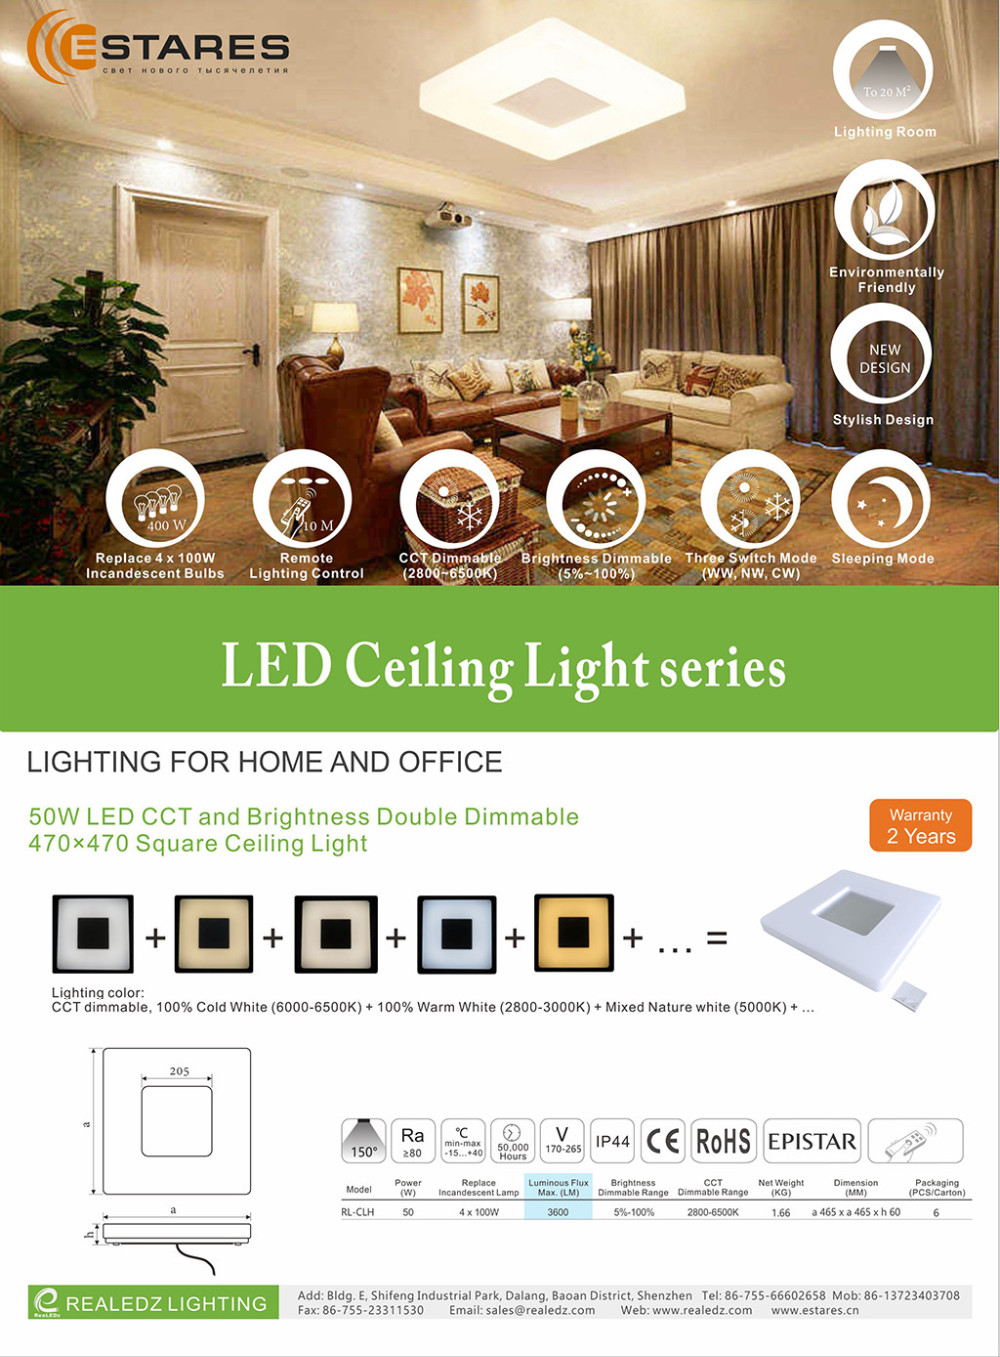 New innovation interior diamond shape LED ceiling mount light with dimmable